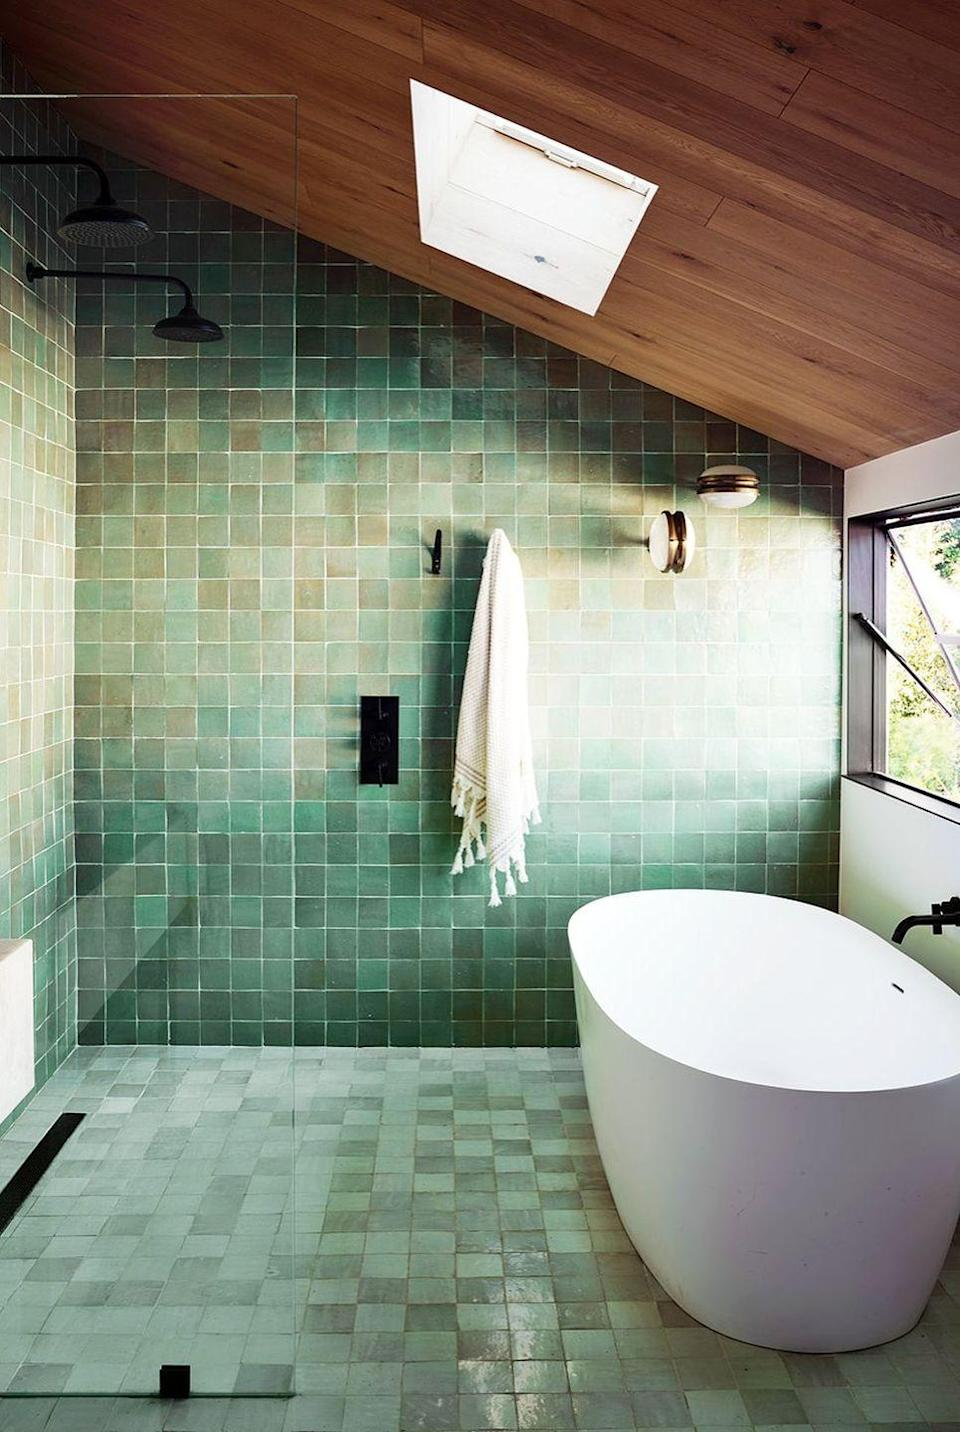 """<p>The wood panel ceiling and green zellige tiles in this bathroom by <a href=""""https://romanekdesignstudio.com/"""" rel=""""nofollow noopener"""" target=""""_blank"""" data-ylk=""""slk:Romanek Design Studio"""" class=""""link rapid-noclick-resp"""">Romanek Design Studio</a> are both ultra-modern and totally down to earth. Aside from giving the room an invigorating yet soothing surge of energy, the wall-to-wall green tile floor means that basically everything in the room will hold up well when wet. </p>"""